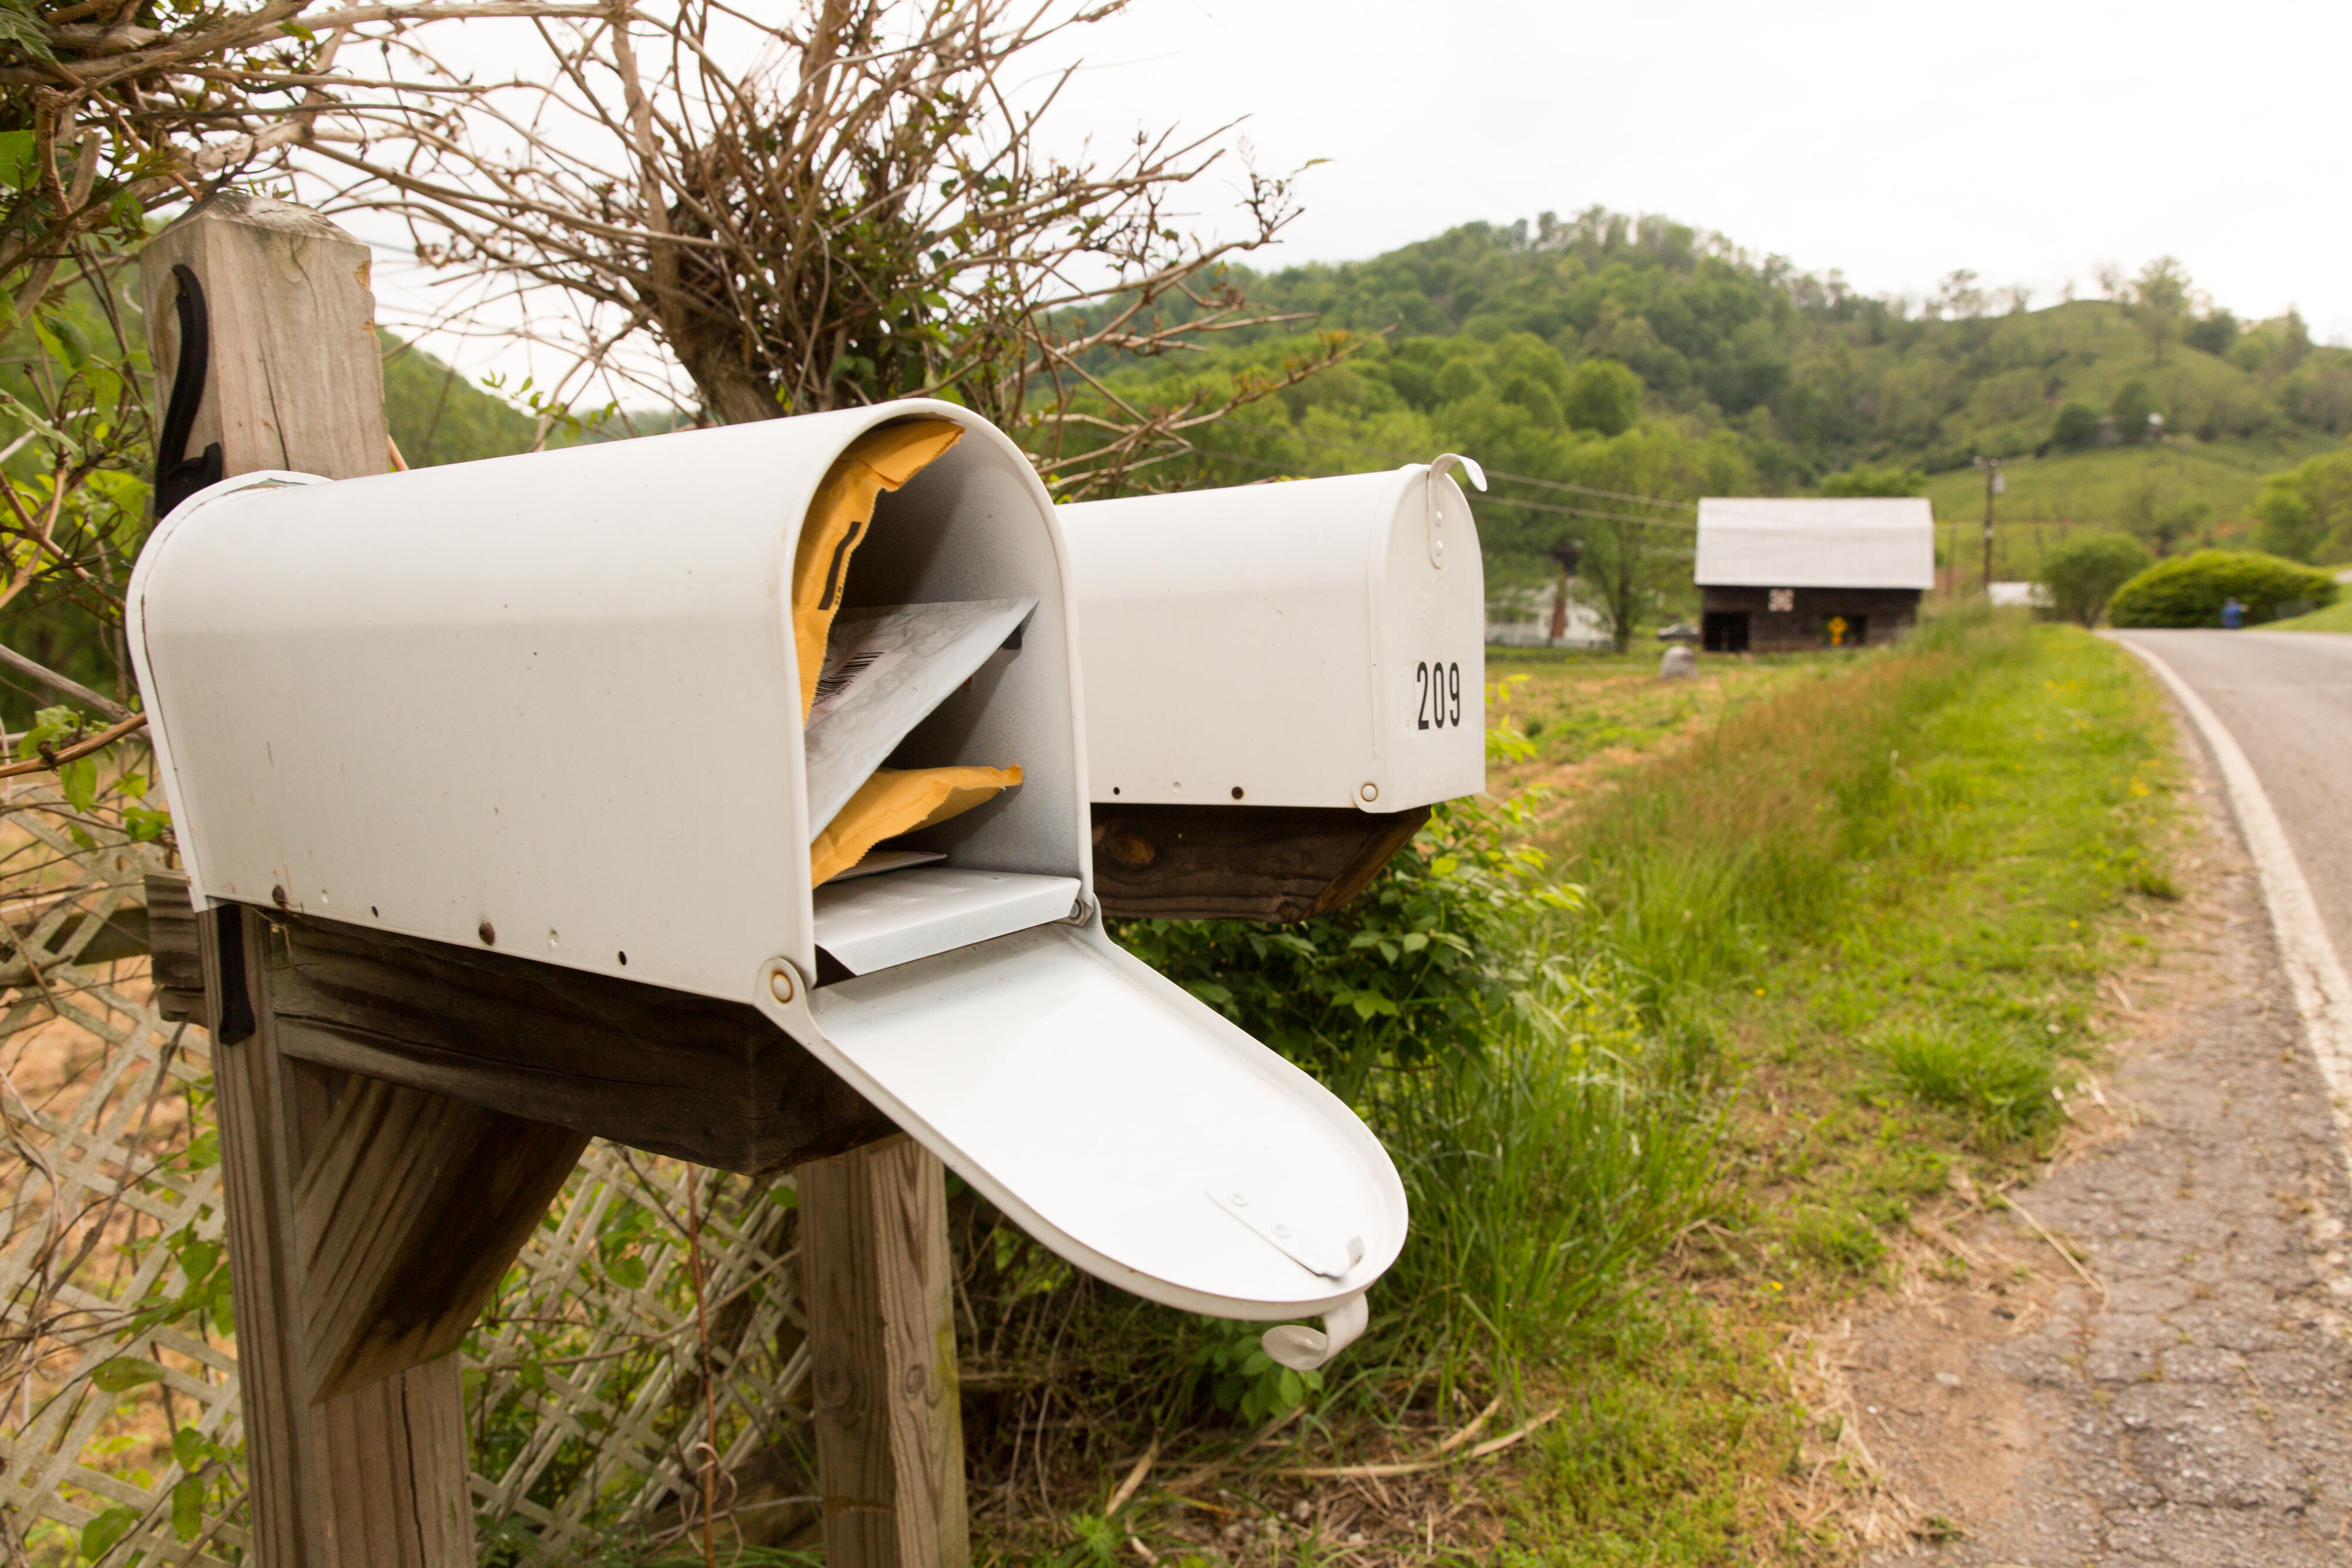 mail-packages-usps-fedex-amazon-ups-doorstep-mailbox-letters-shipping-coronavirus-stay-at-home-2020-cnet